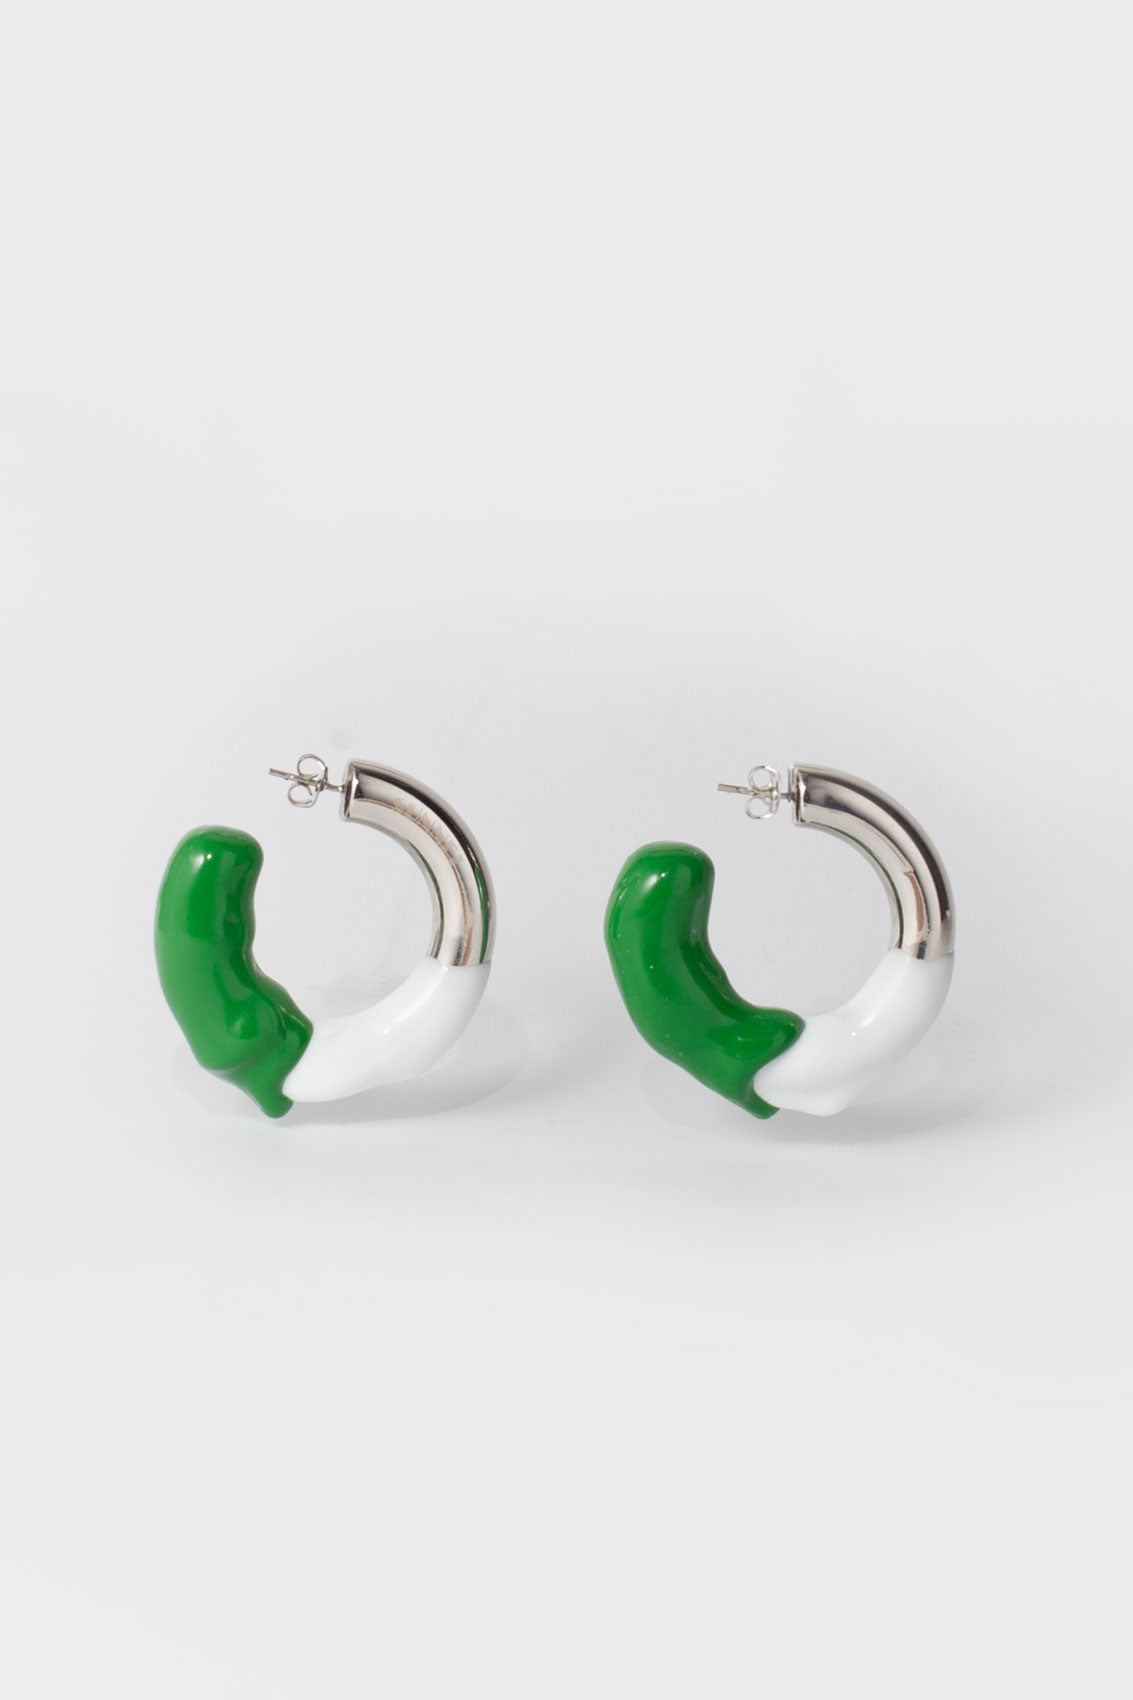 WHITE & GREEN RUBBERIZED SILVER EARRINGS